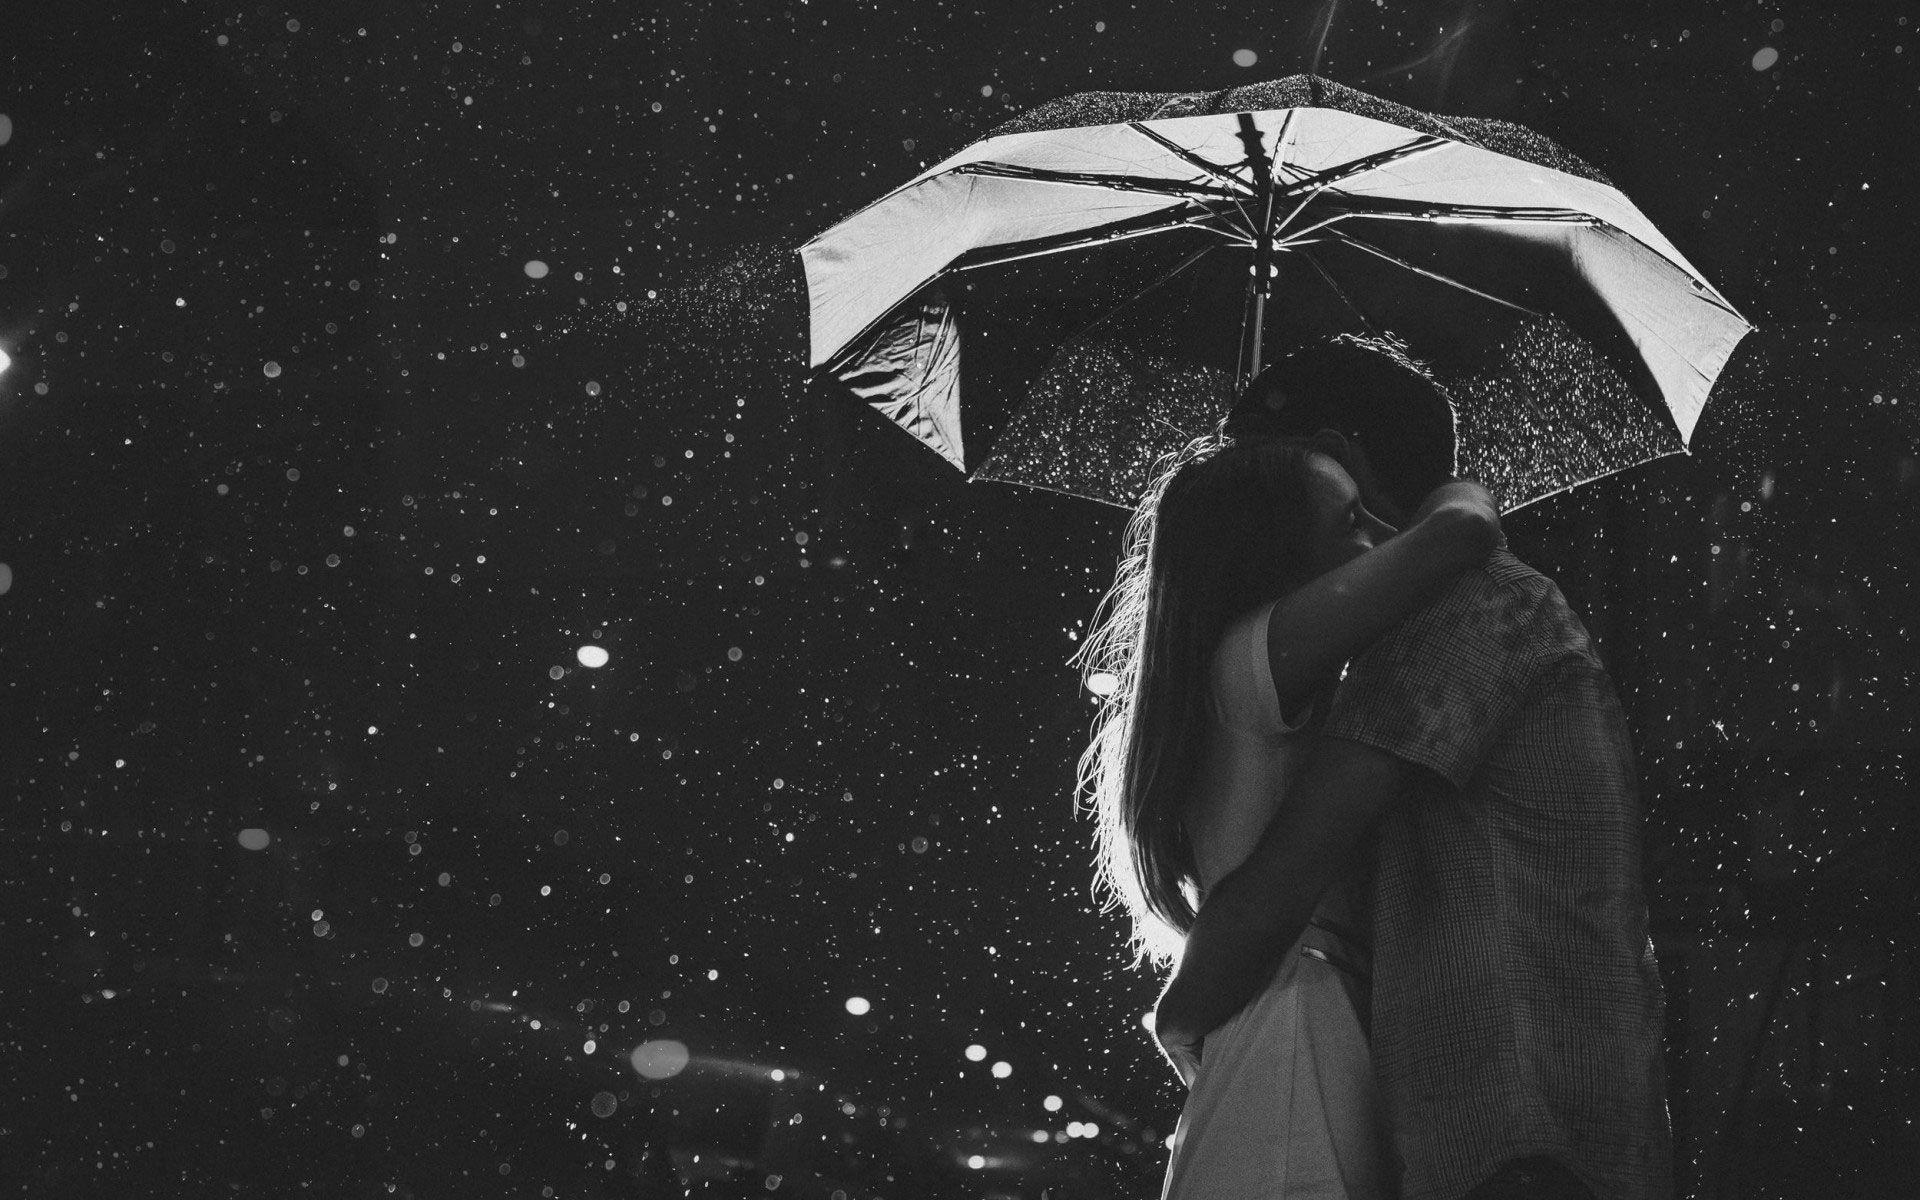 Sweet black and white romance wallpaper of love couples